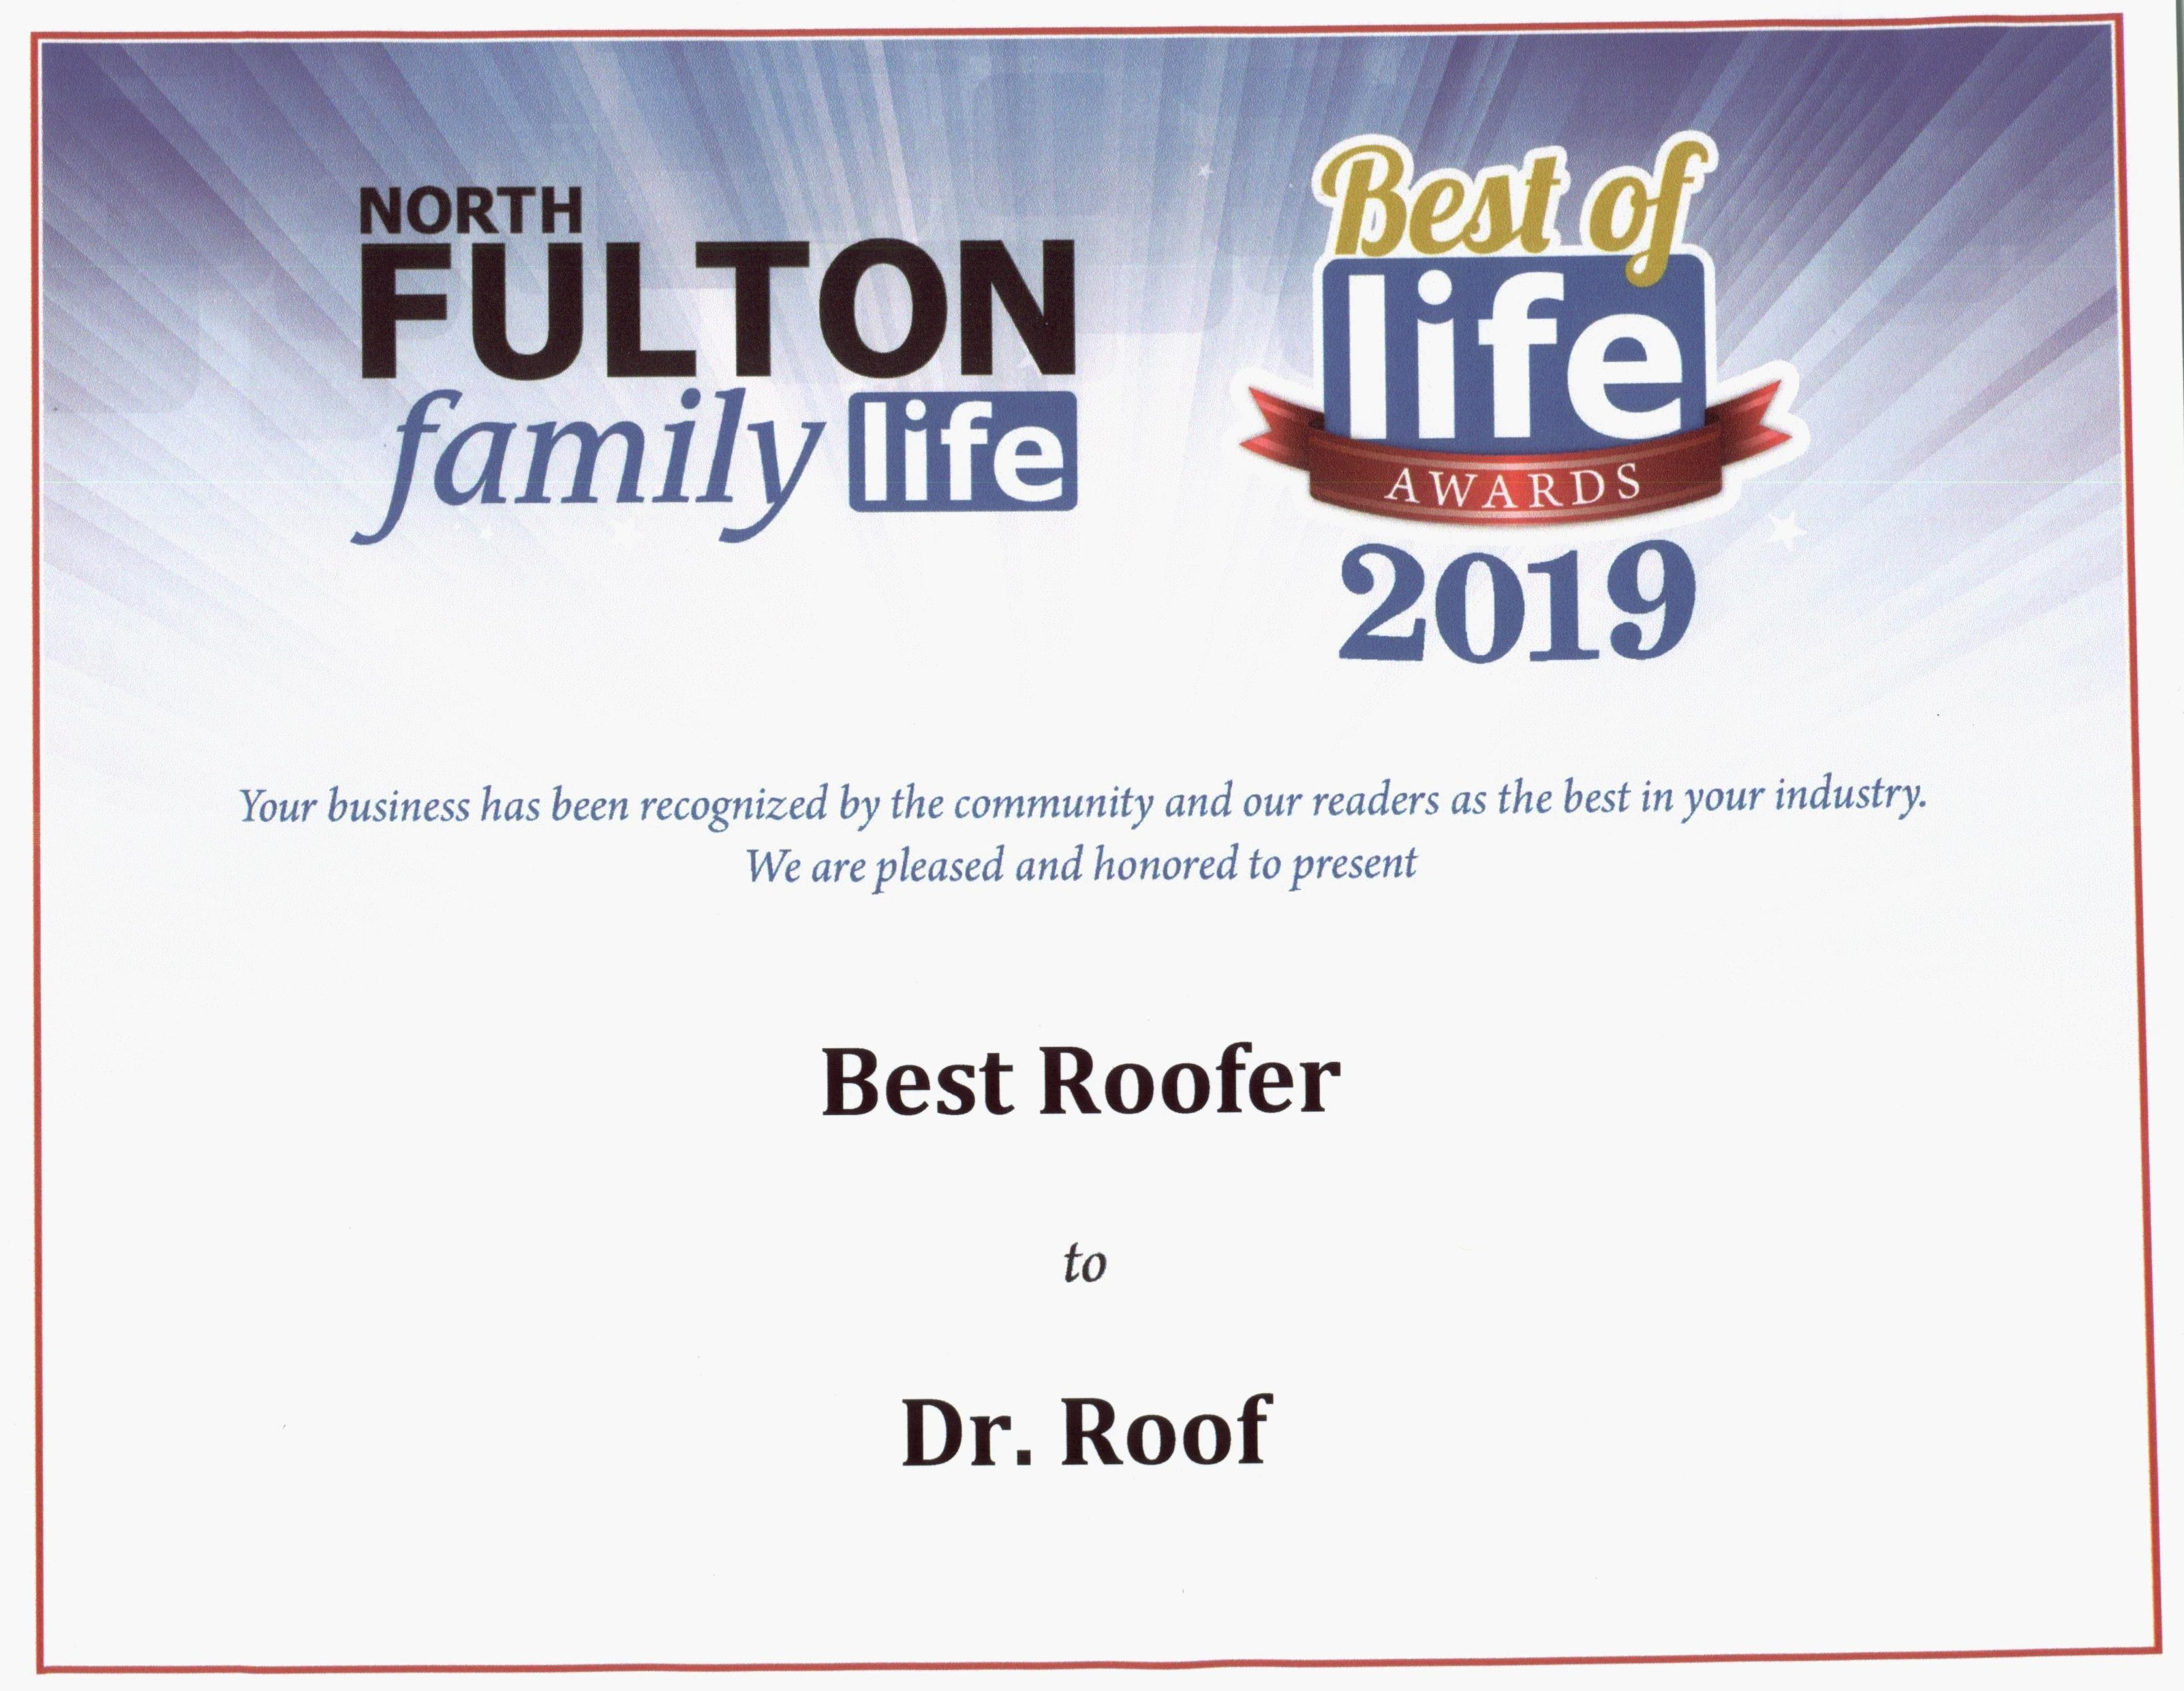 Dr Roof Wins North Fulton Life Award